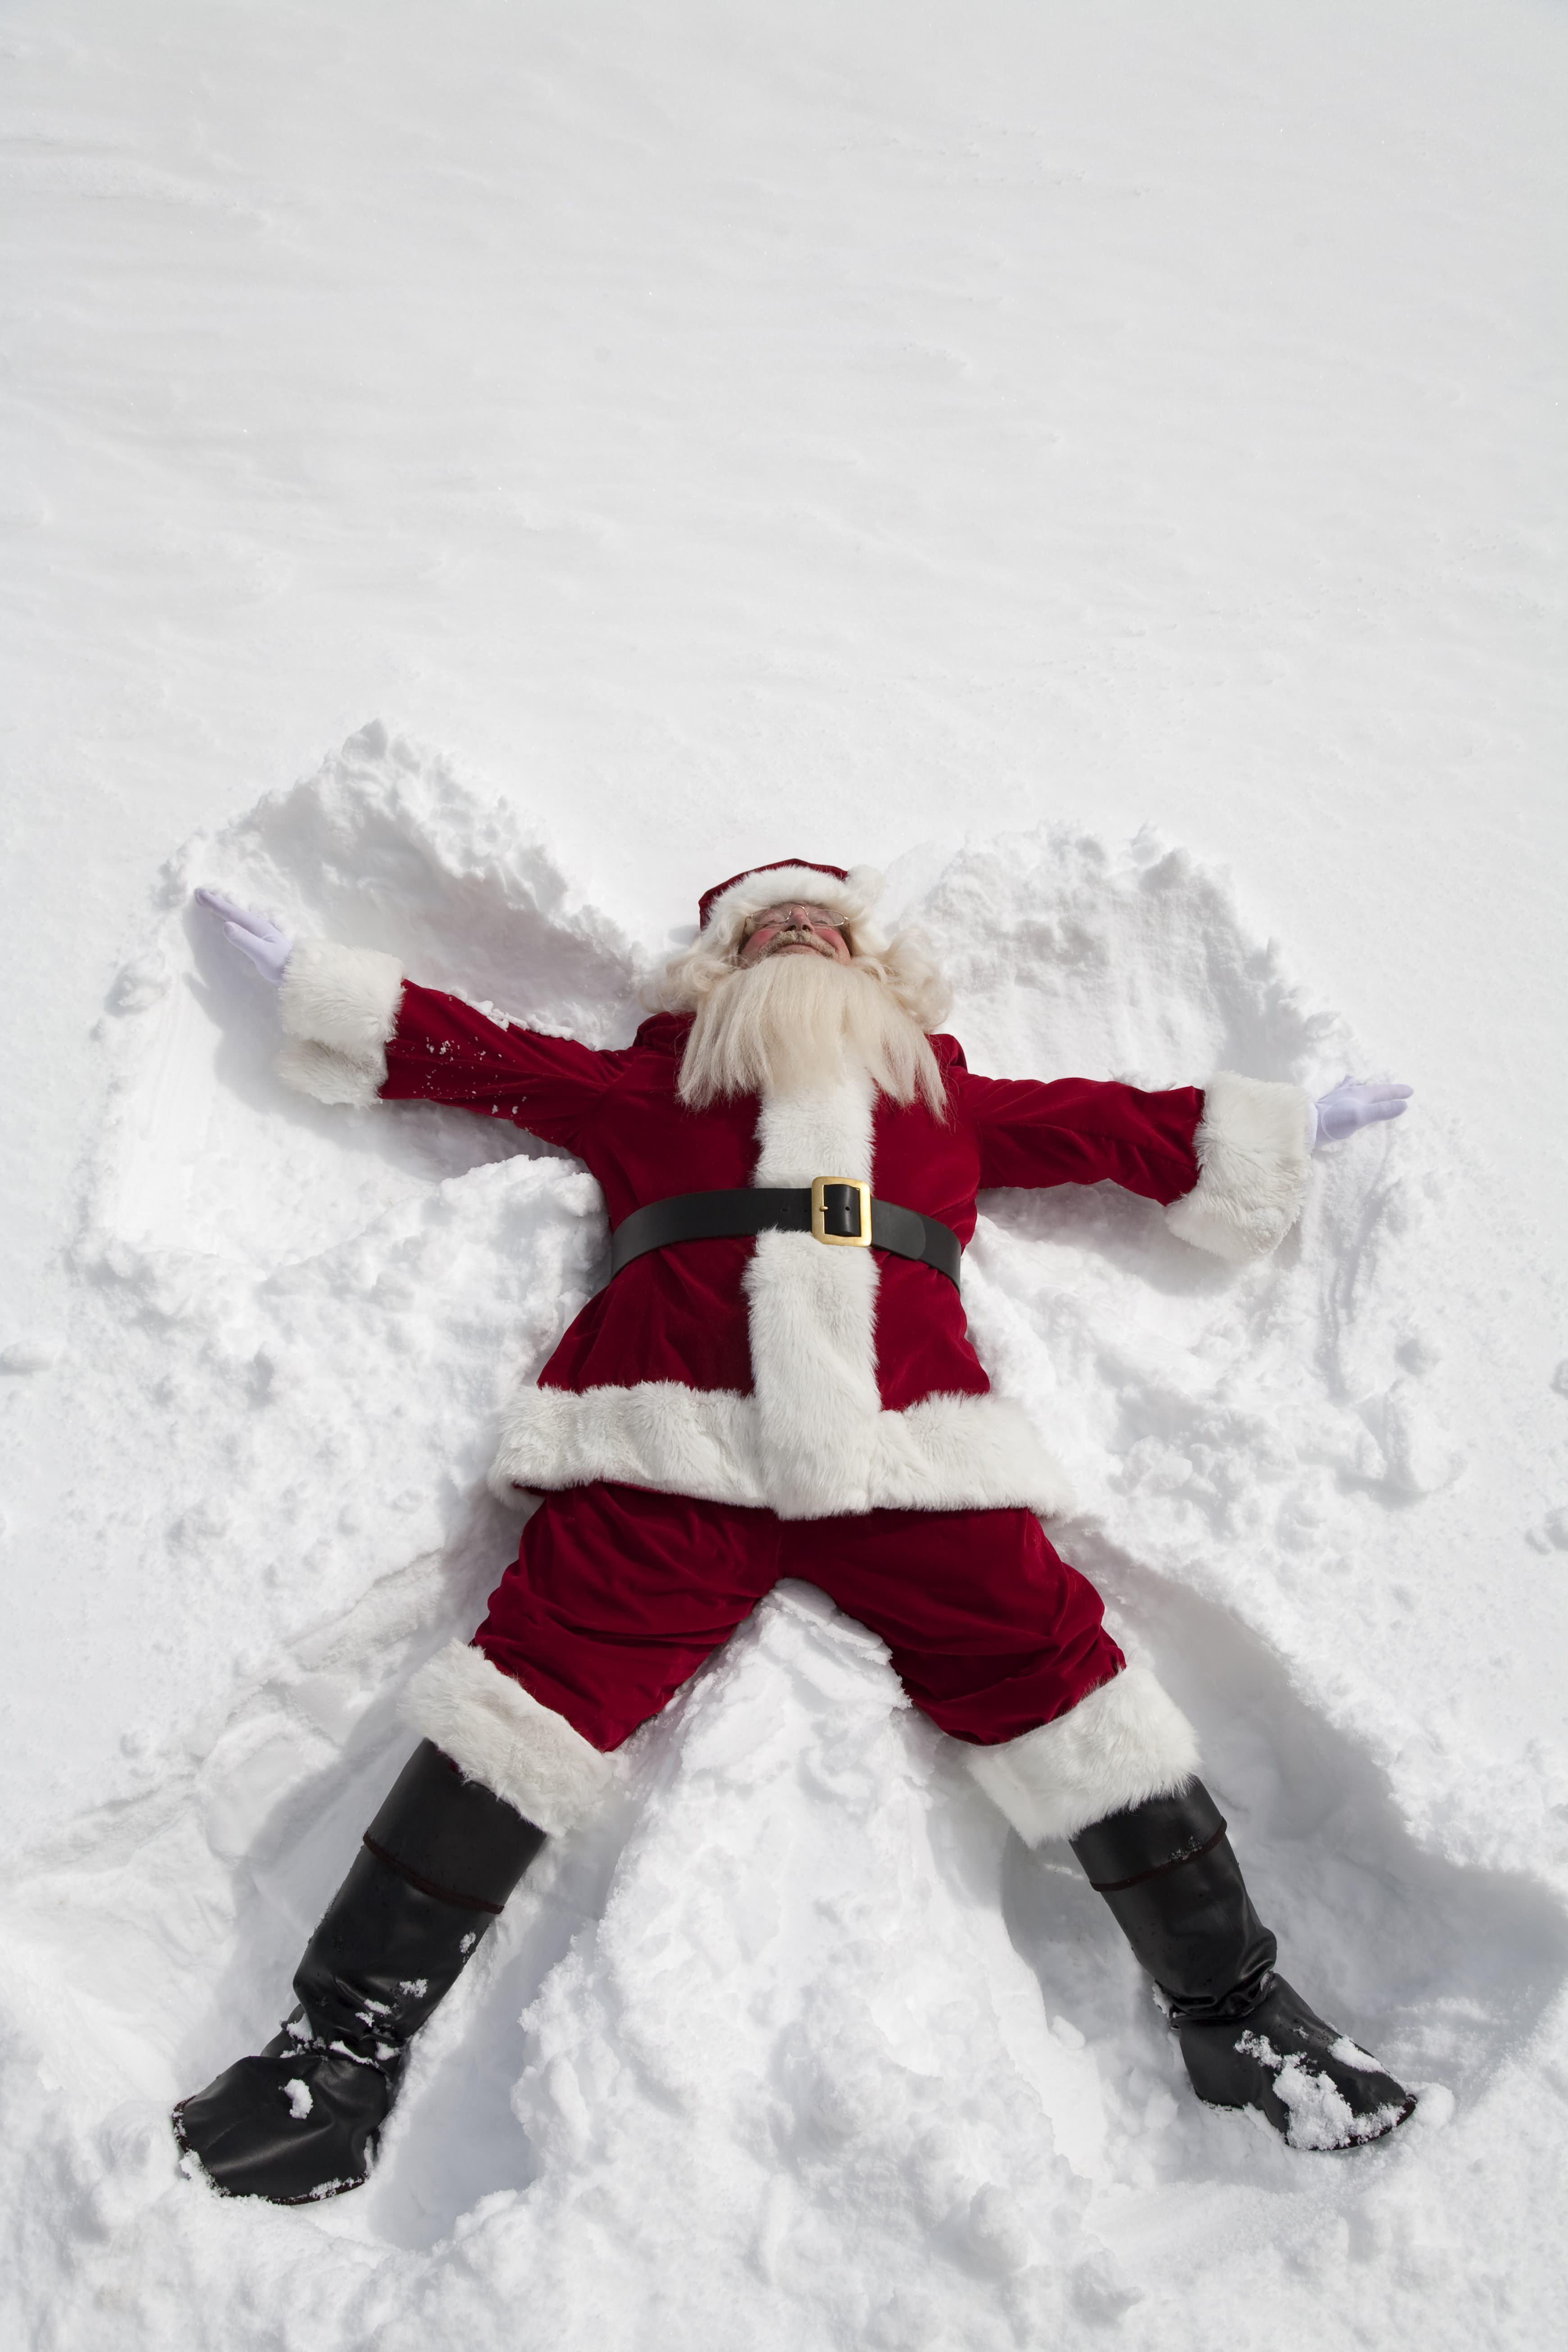 Can We Tell the Santa Story Without Undermining Kids' Faith in Us?